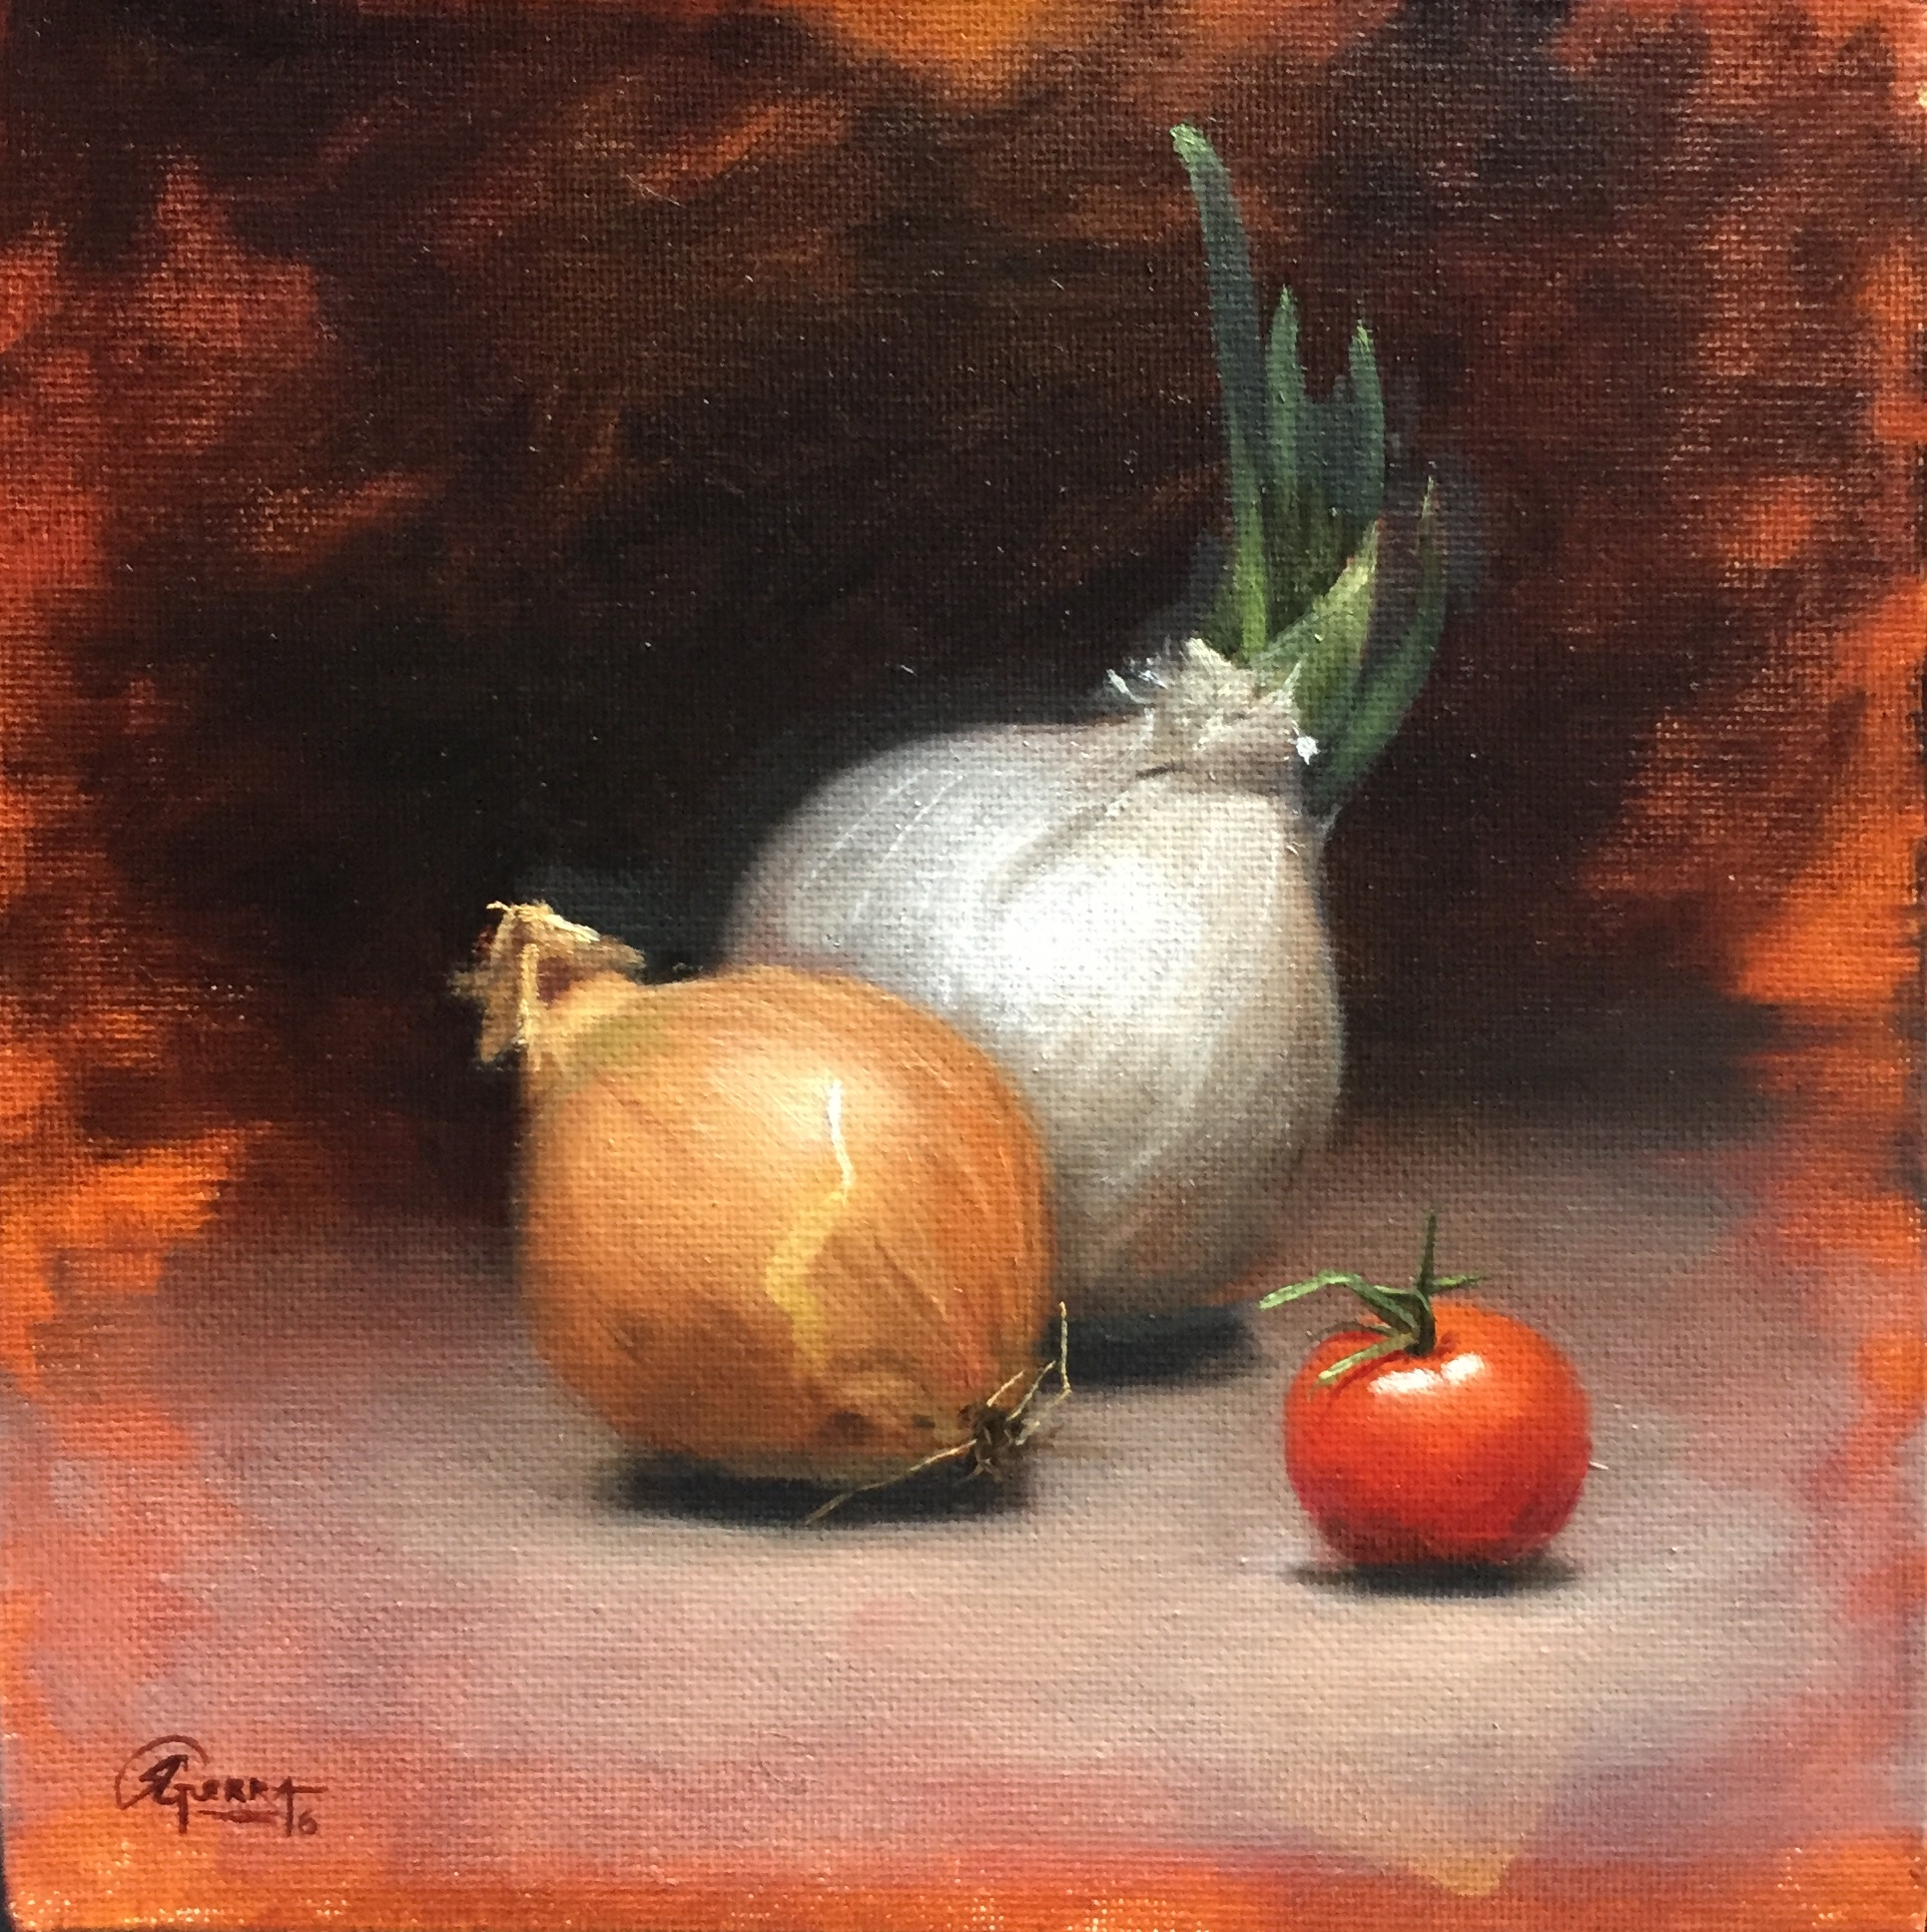 Onions and Cherry Tomatoe